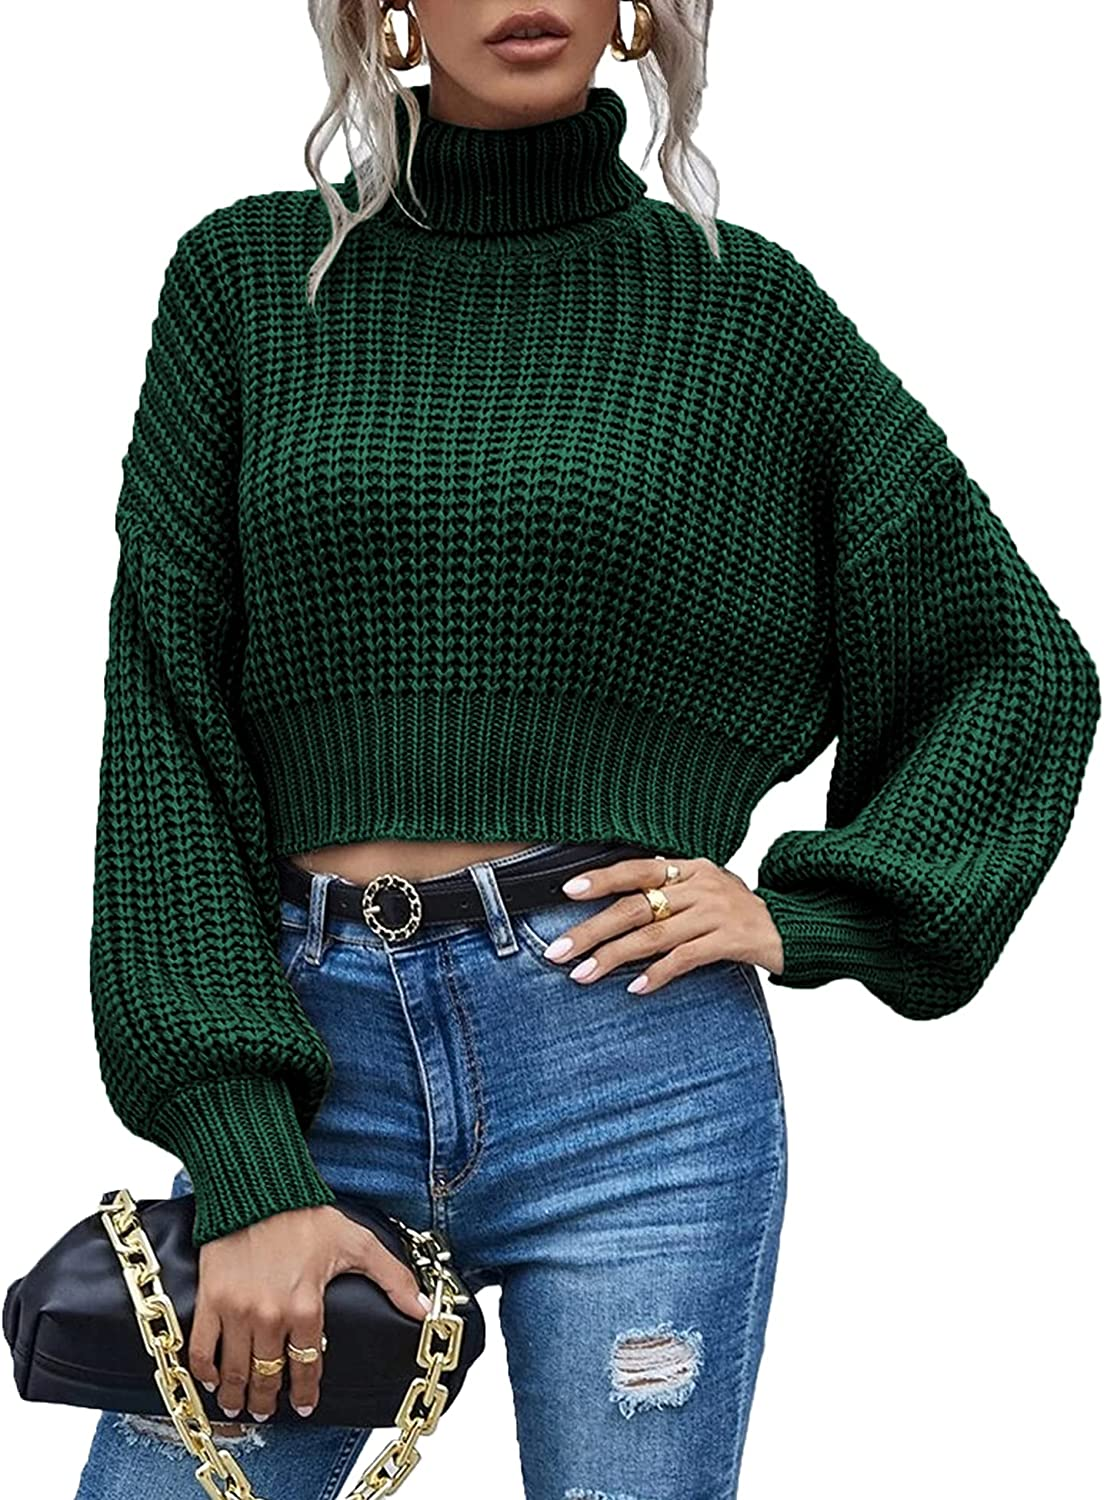 Chigant Women's Turtleneck Knit Sweaters Casual Lantern Long Sleeve Pullover Cropped Cute Jumper Drop Shoulder Top